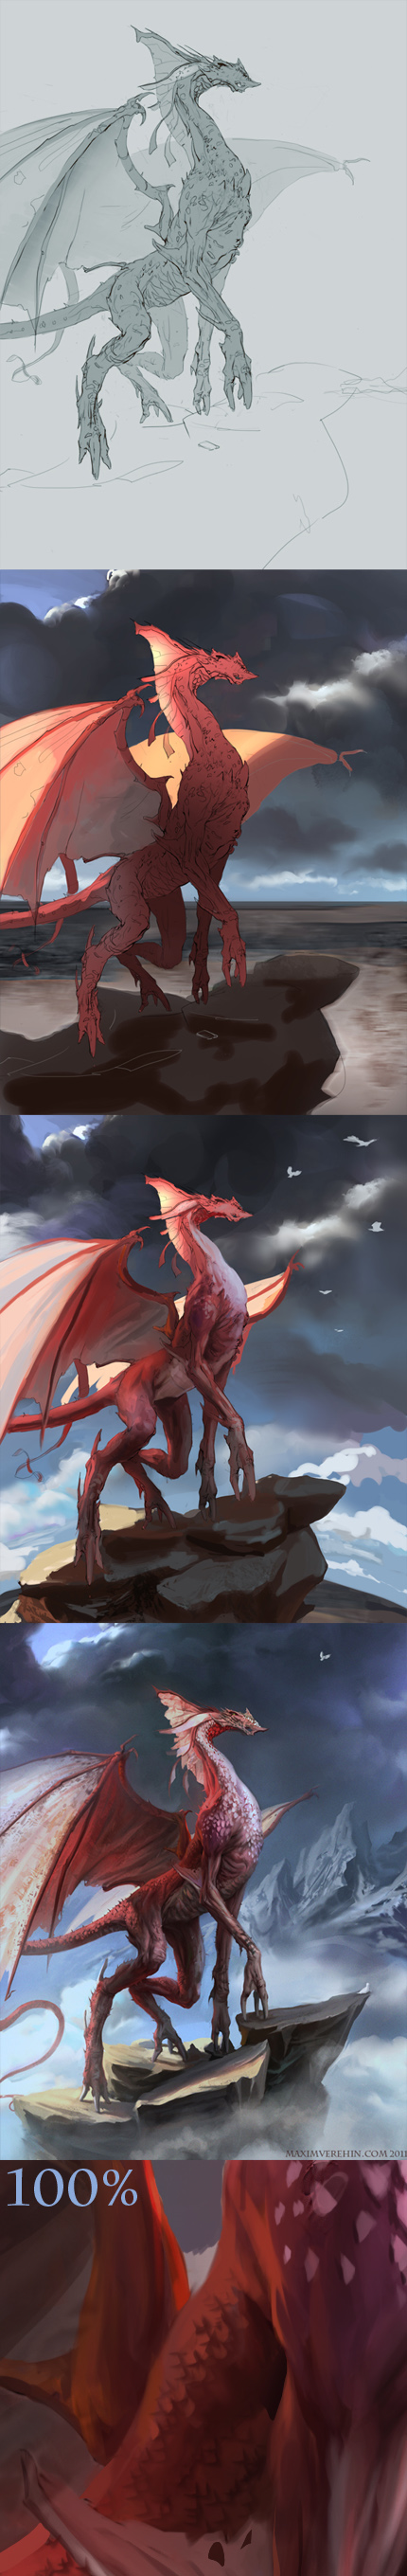 Red Dragon- Process by Verehin